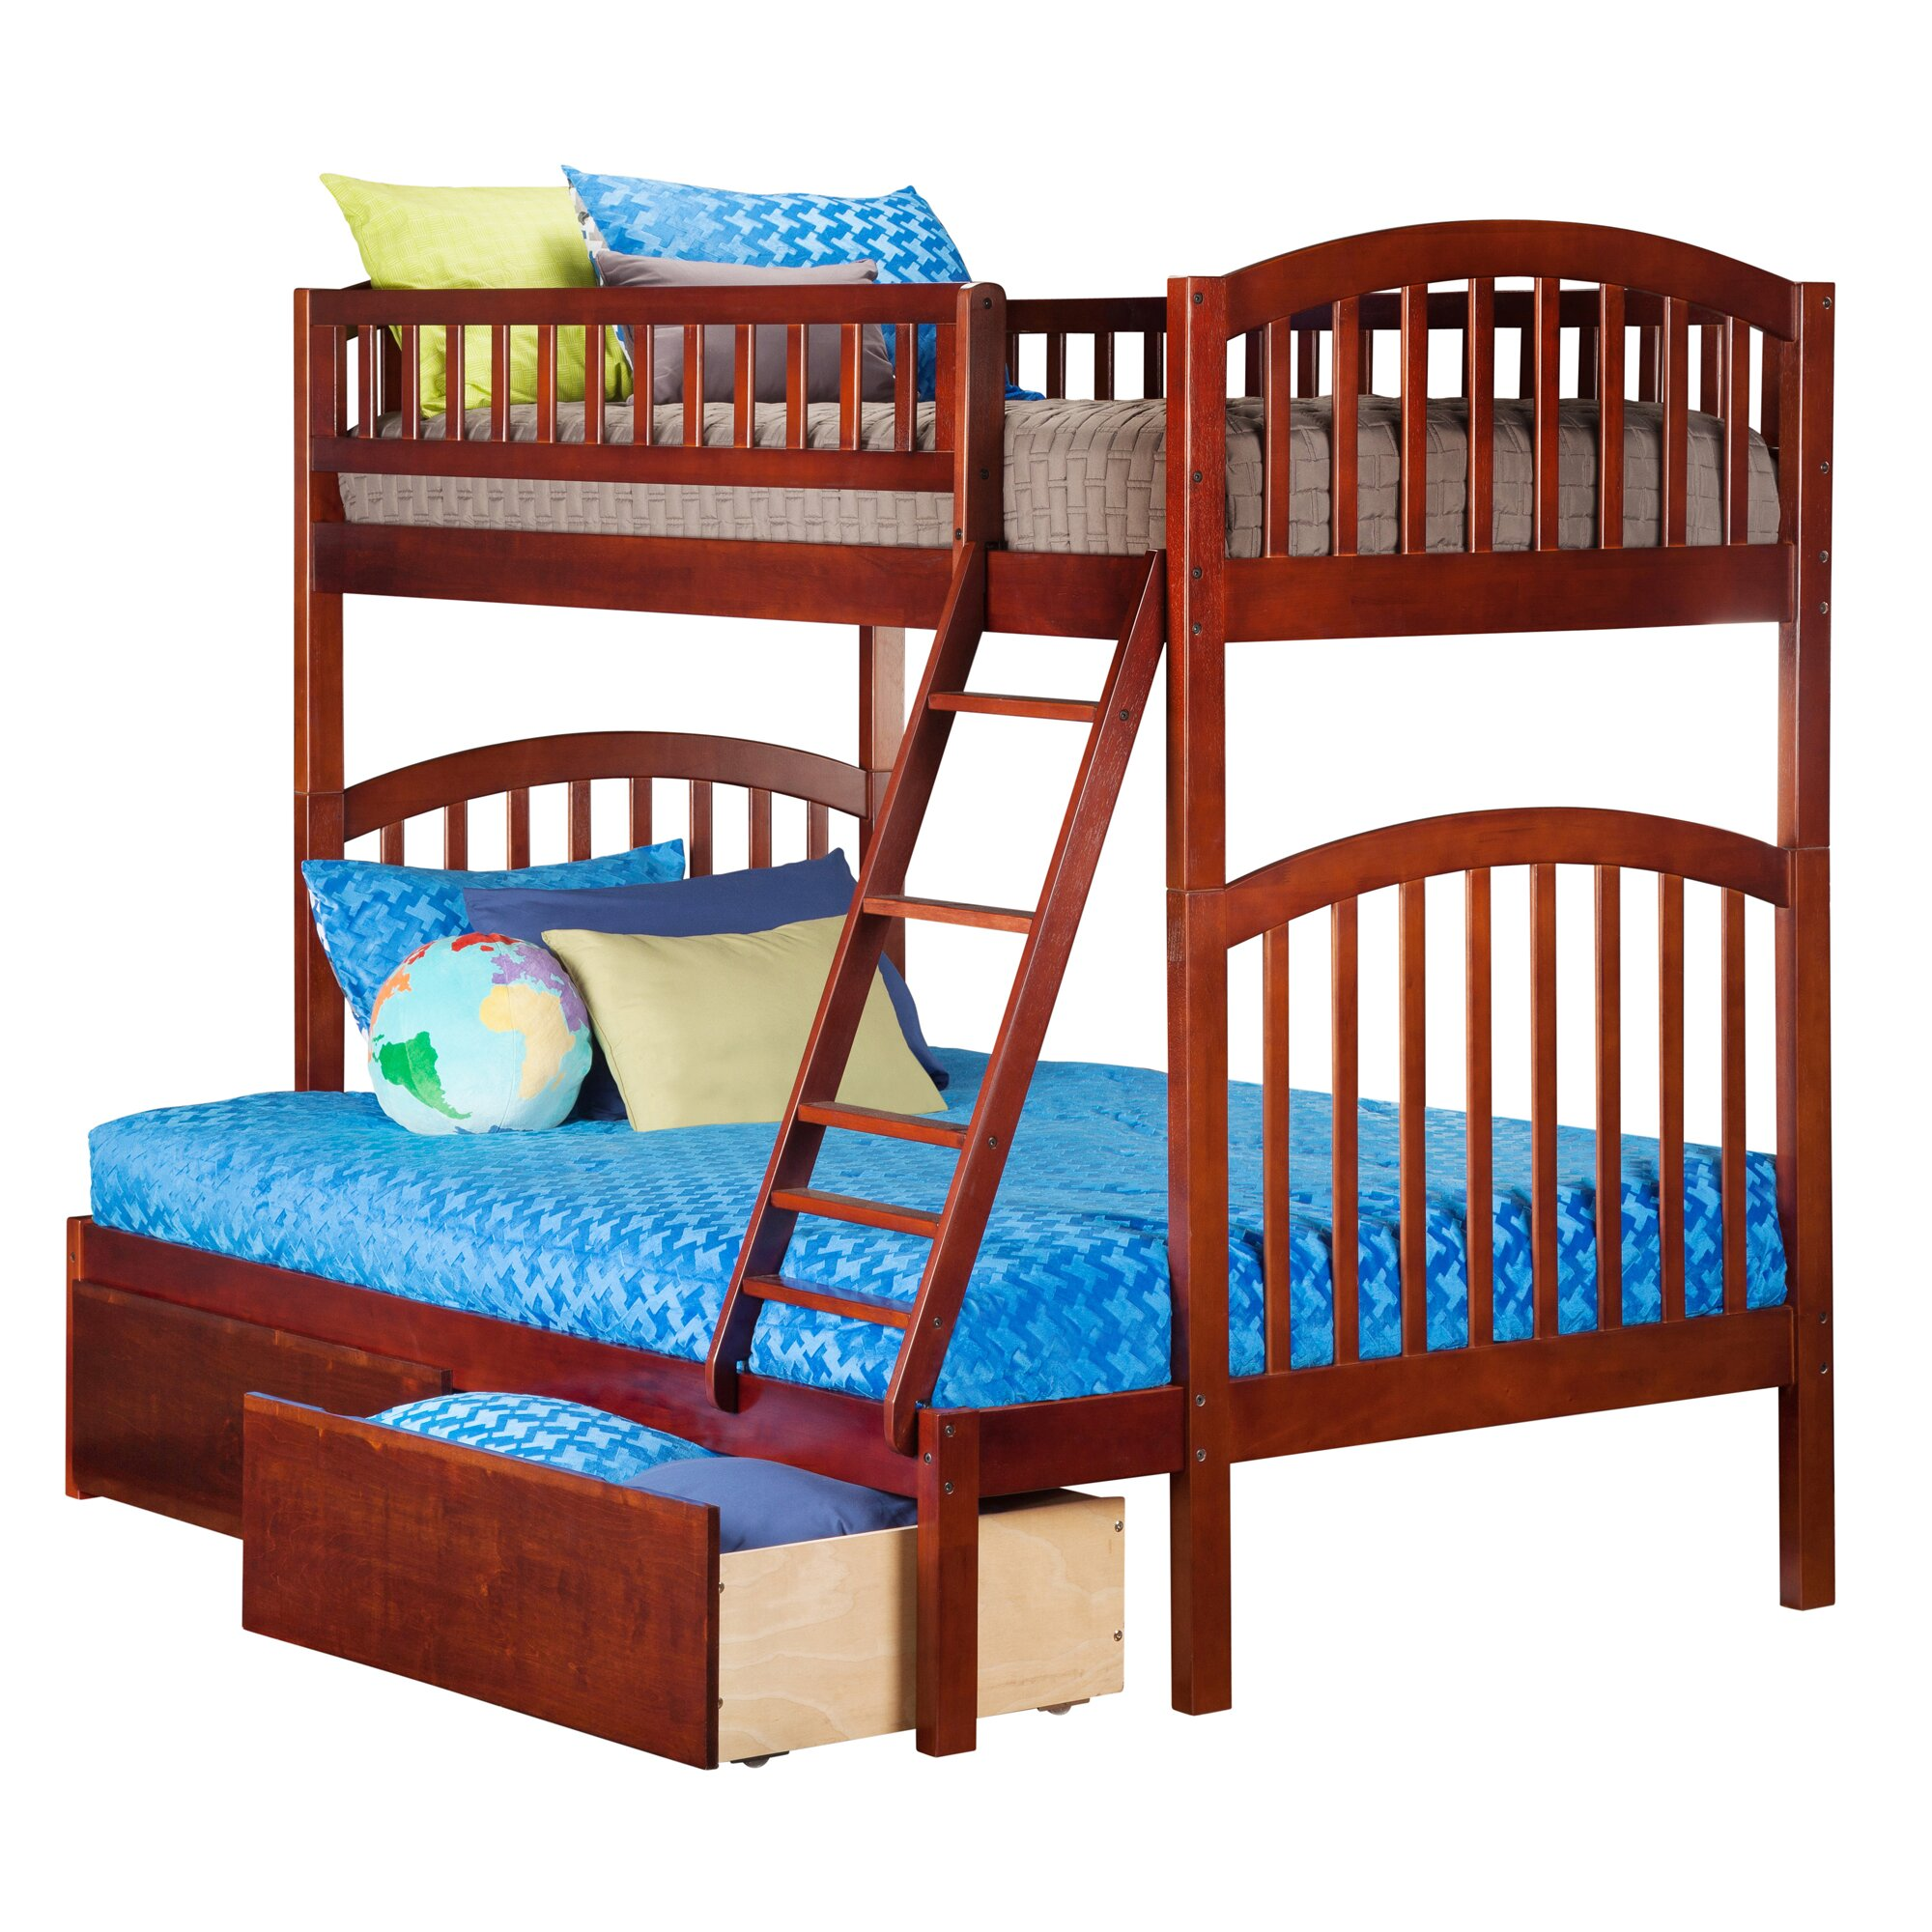 Atlantic furniture richland twin over full bunk bed for Full bedroom sets with mattress